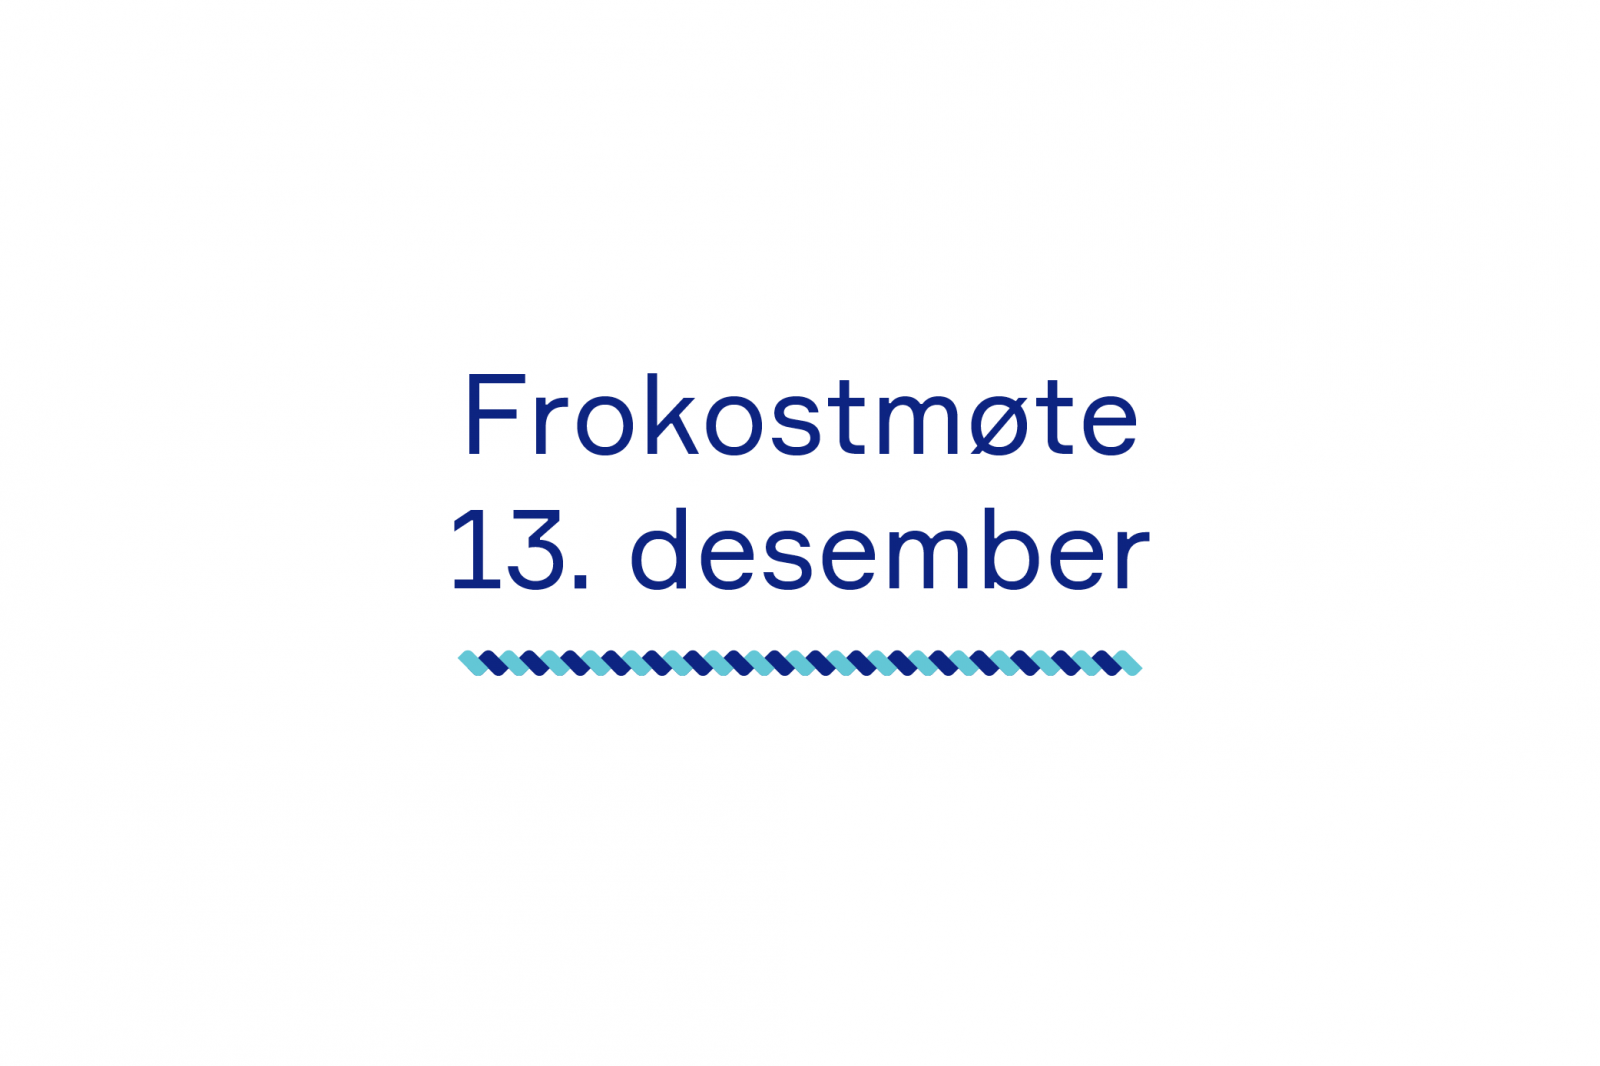 Frokostmote